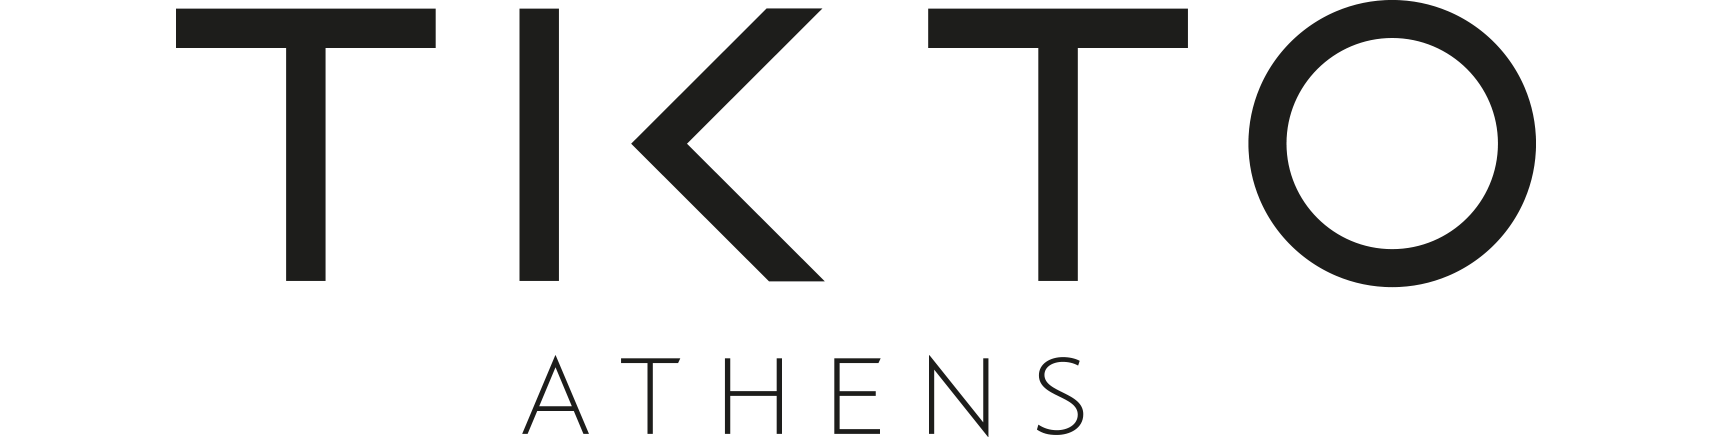 tikto-logo-site tikto, tikto athens, handmade cloths, greek cloths, handmade greek clothes, handmade greek fashion, greek designer, fashion brand, greek brand, greek products